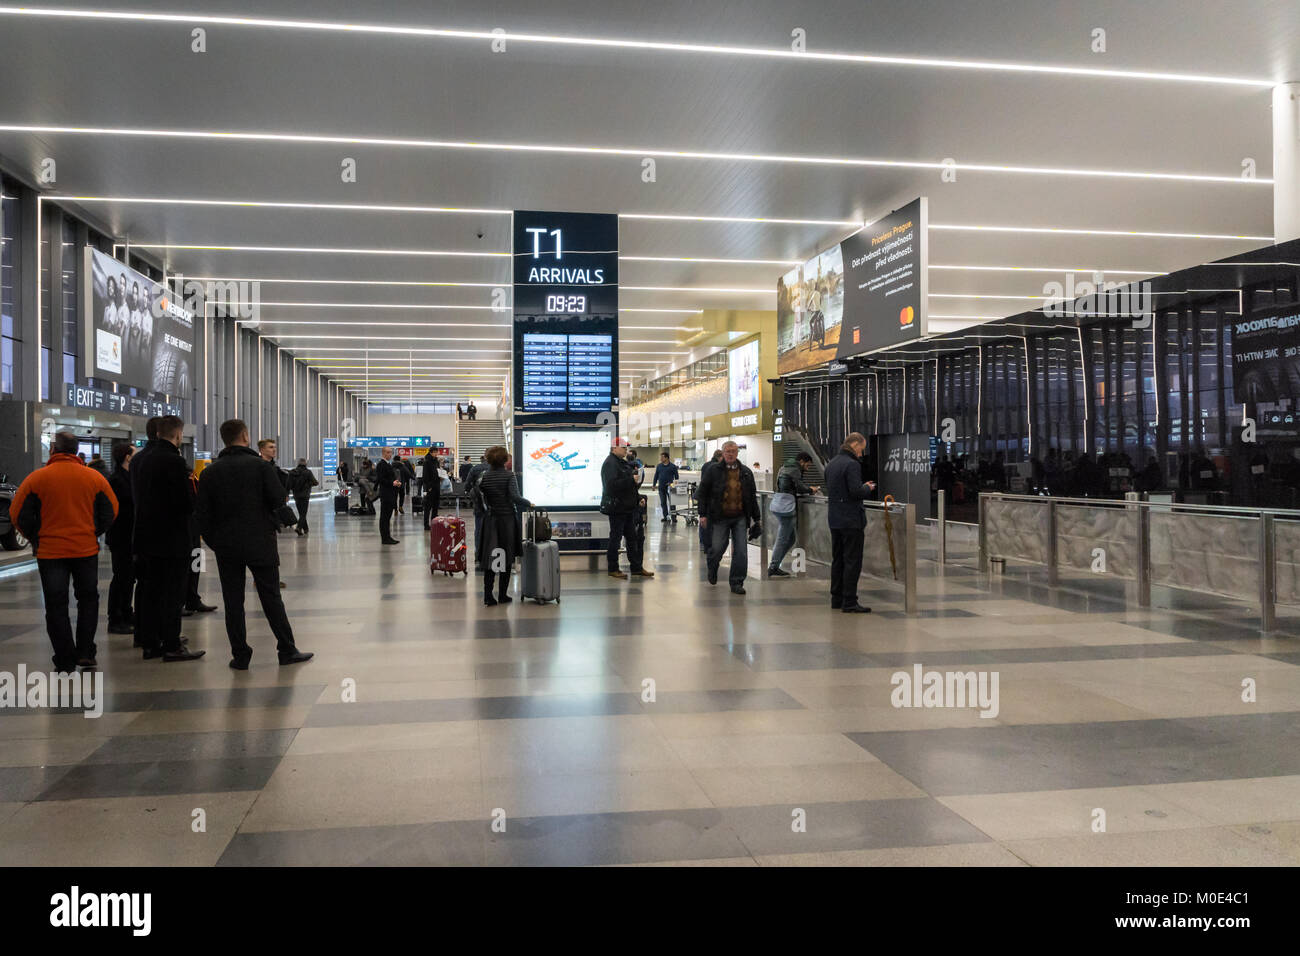 Prague, Czech Republic - December 2017: Arrival area of Vaclav Havel Airport Terminal, formerly known as Ruzyne - Stock Image